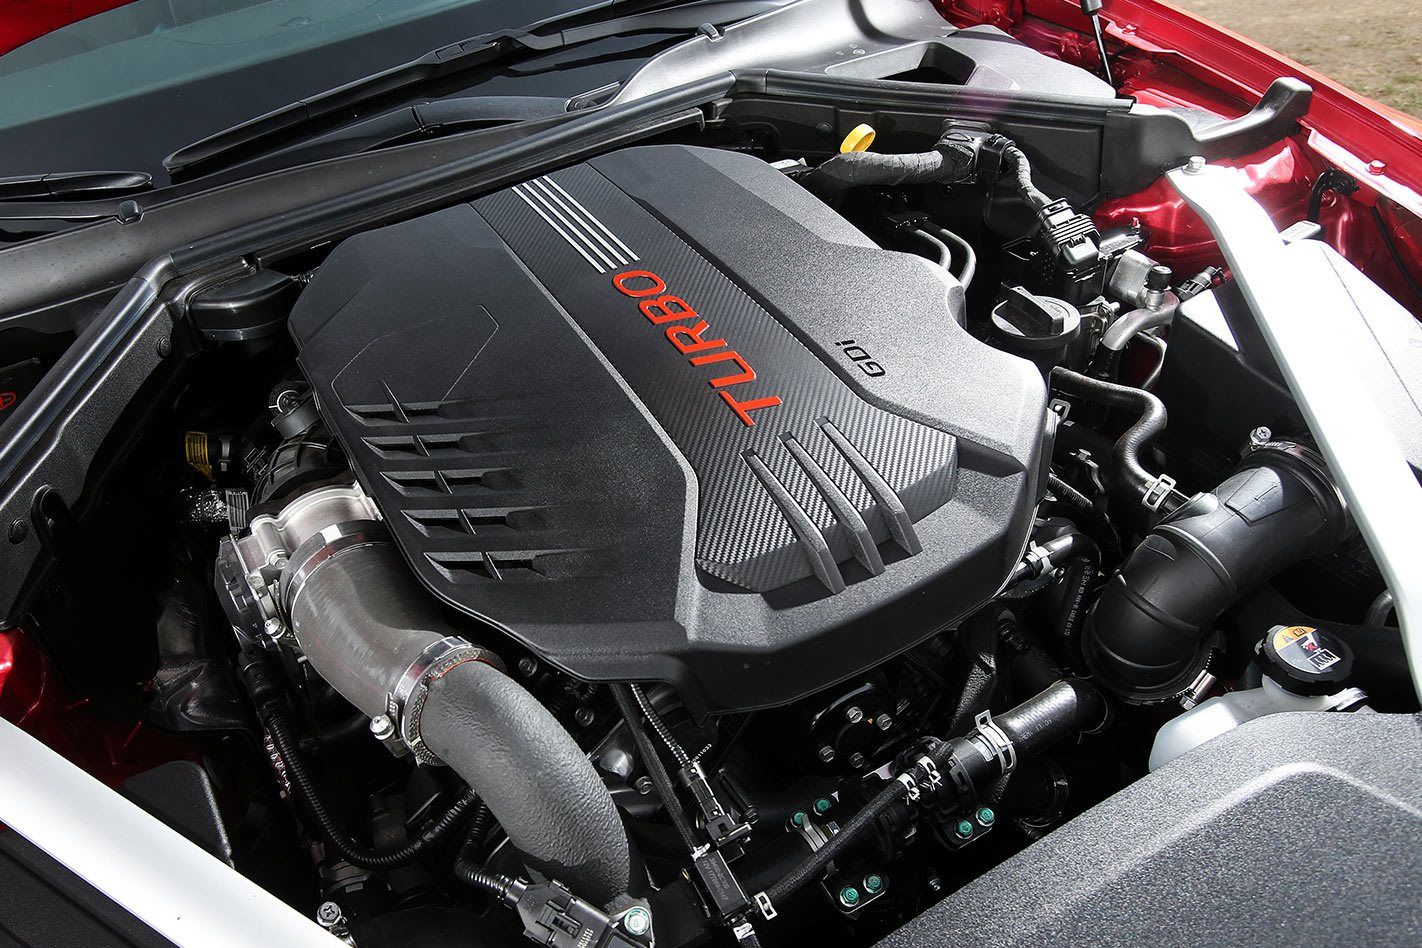 2017 Kia Stinger GT engine